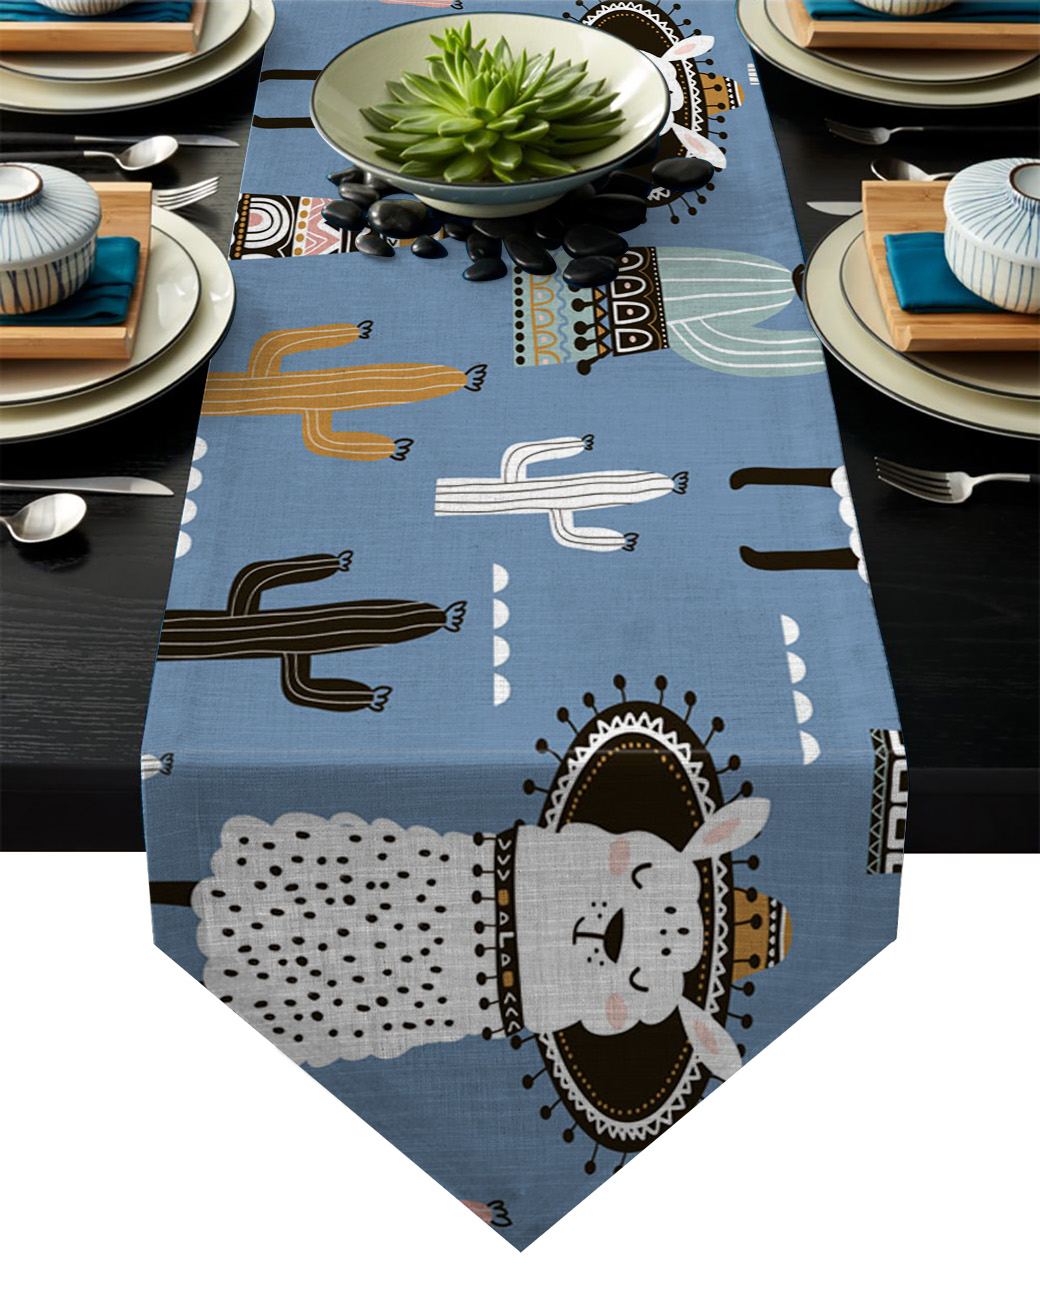 Nordic Cactus Alpaca Cartoon Table Runner Table Flag Home Party Decorative Tablecloth Table Runners|Table Runners| |  -